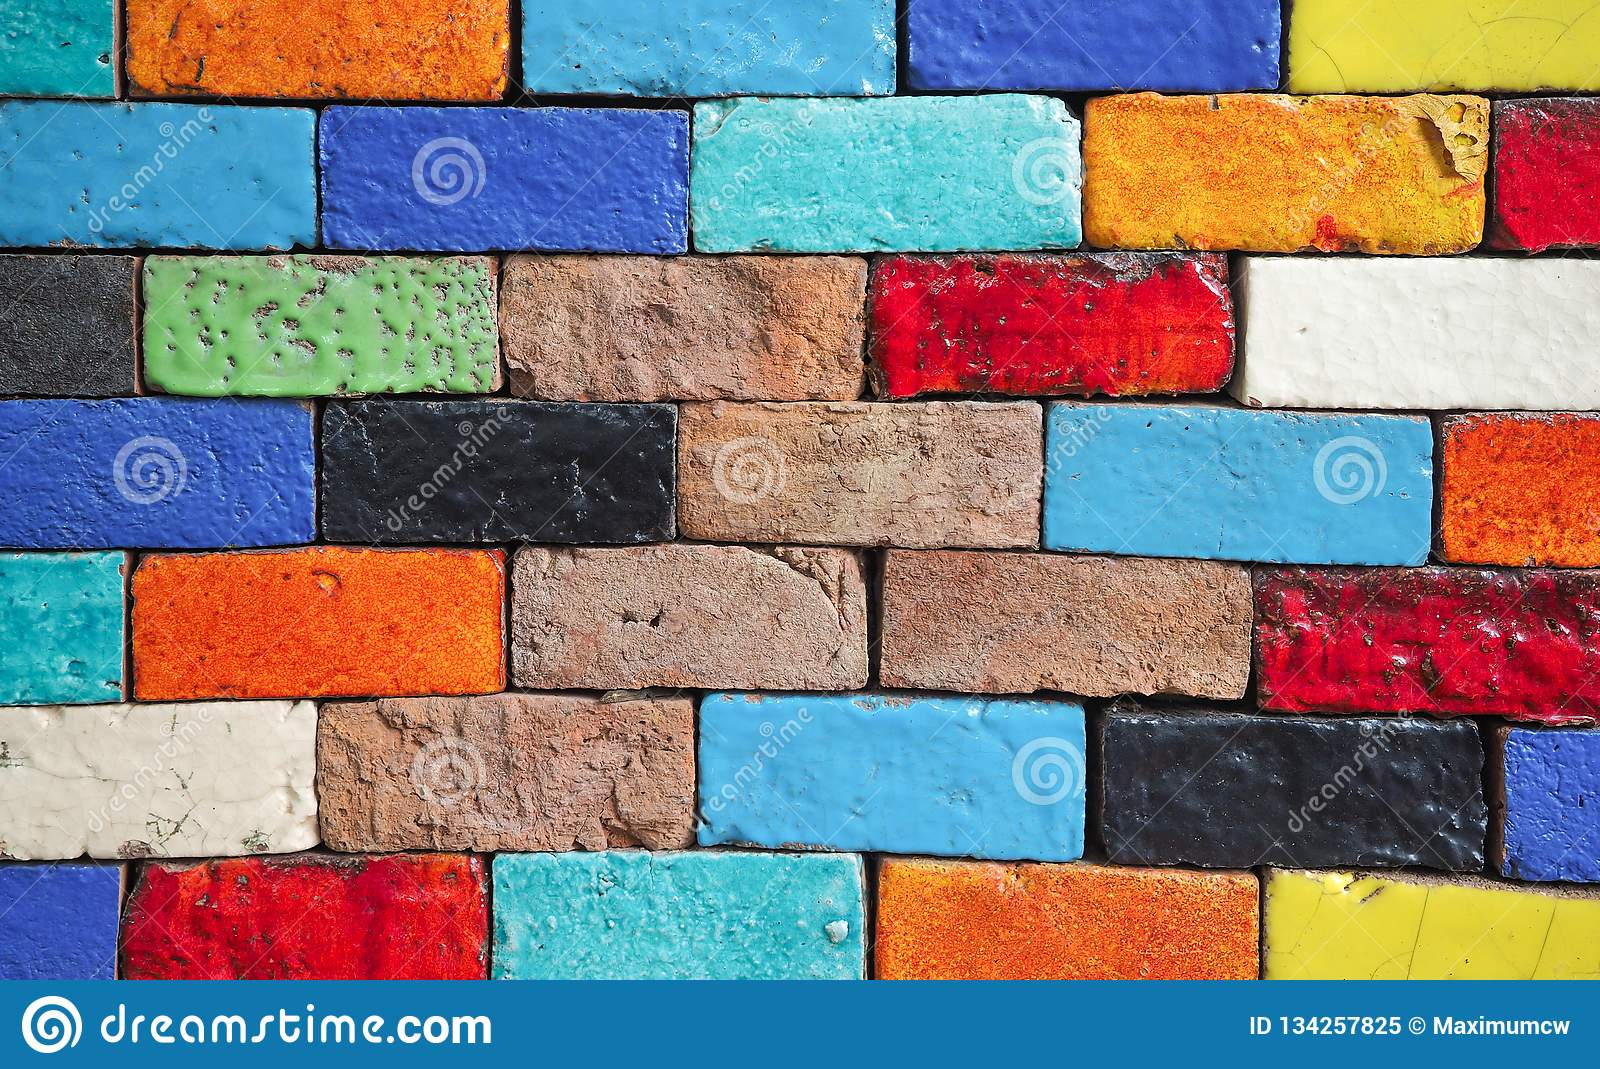 Beauty of the colorful brick walls